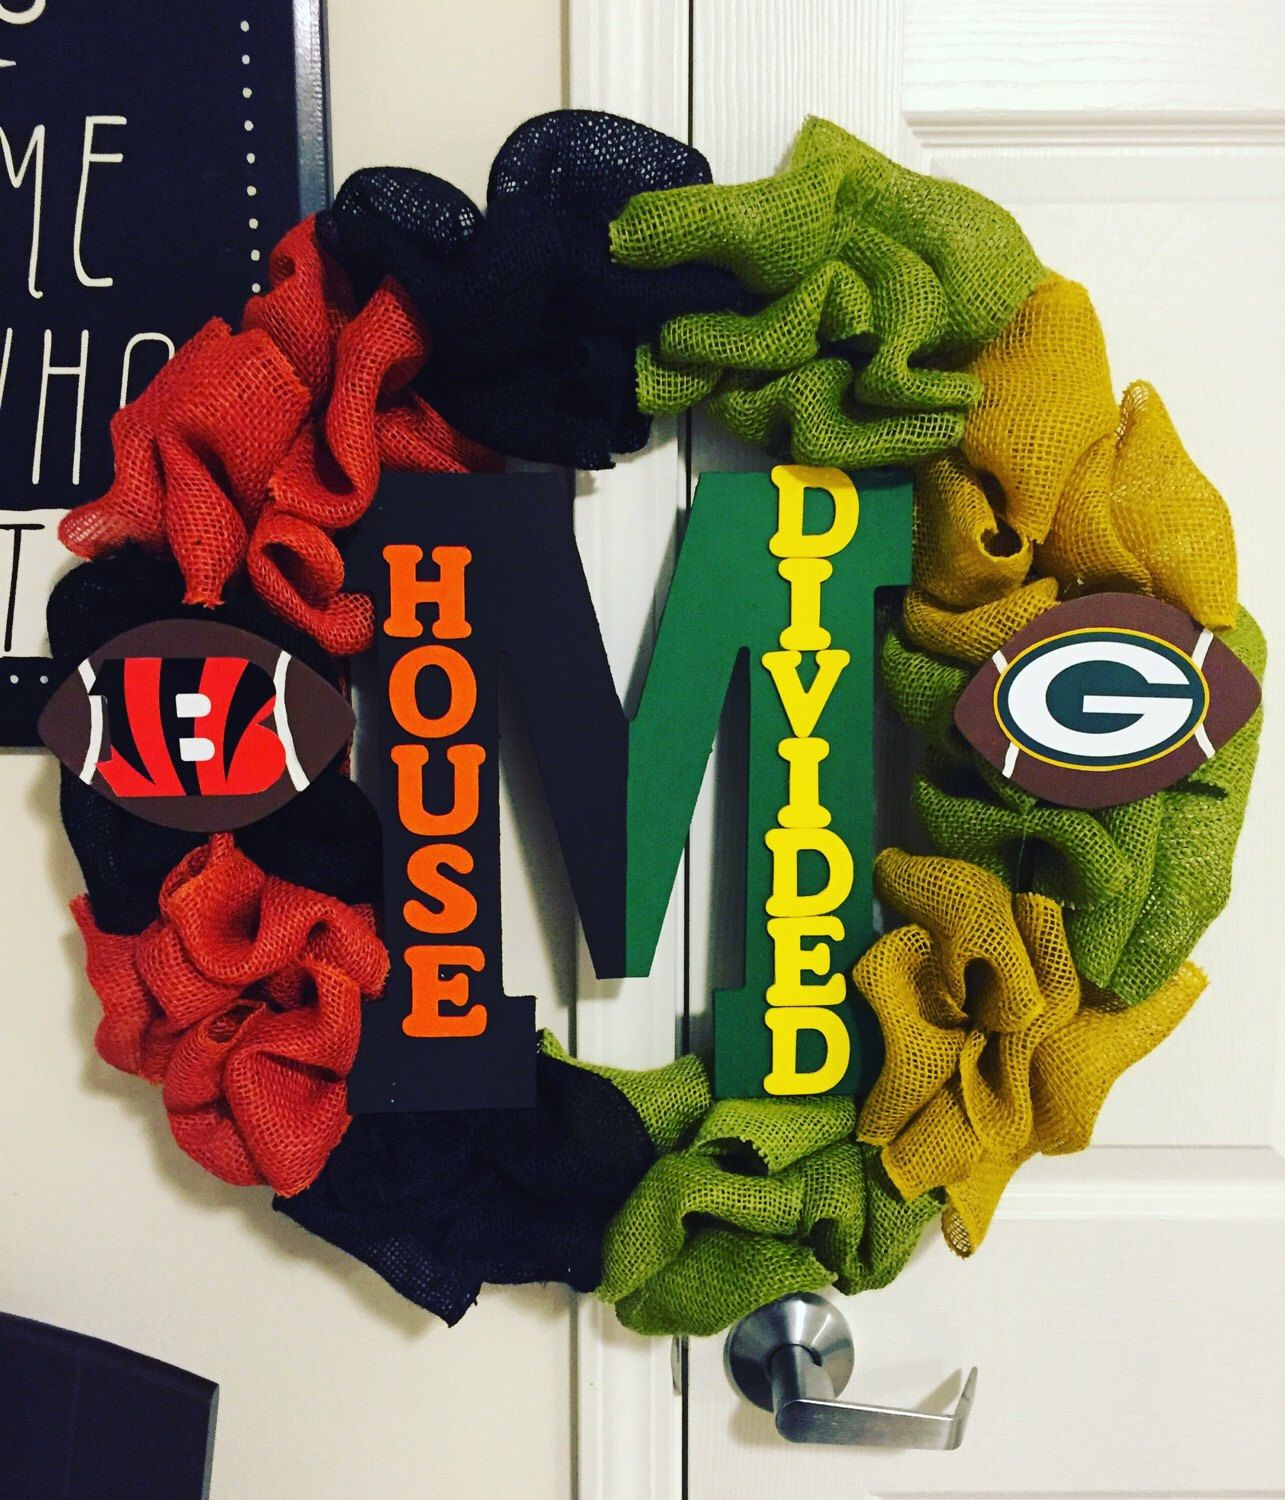 Nfl House Divided Wreath By Thebuckeyeboutique On Etsy Https Www Etsy Com Listing 243816256 Nfl House Divided Wreath With Images House Divided Wreath Wreaths Diy Crafts